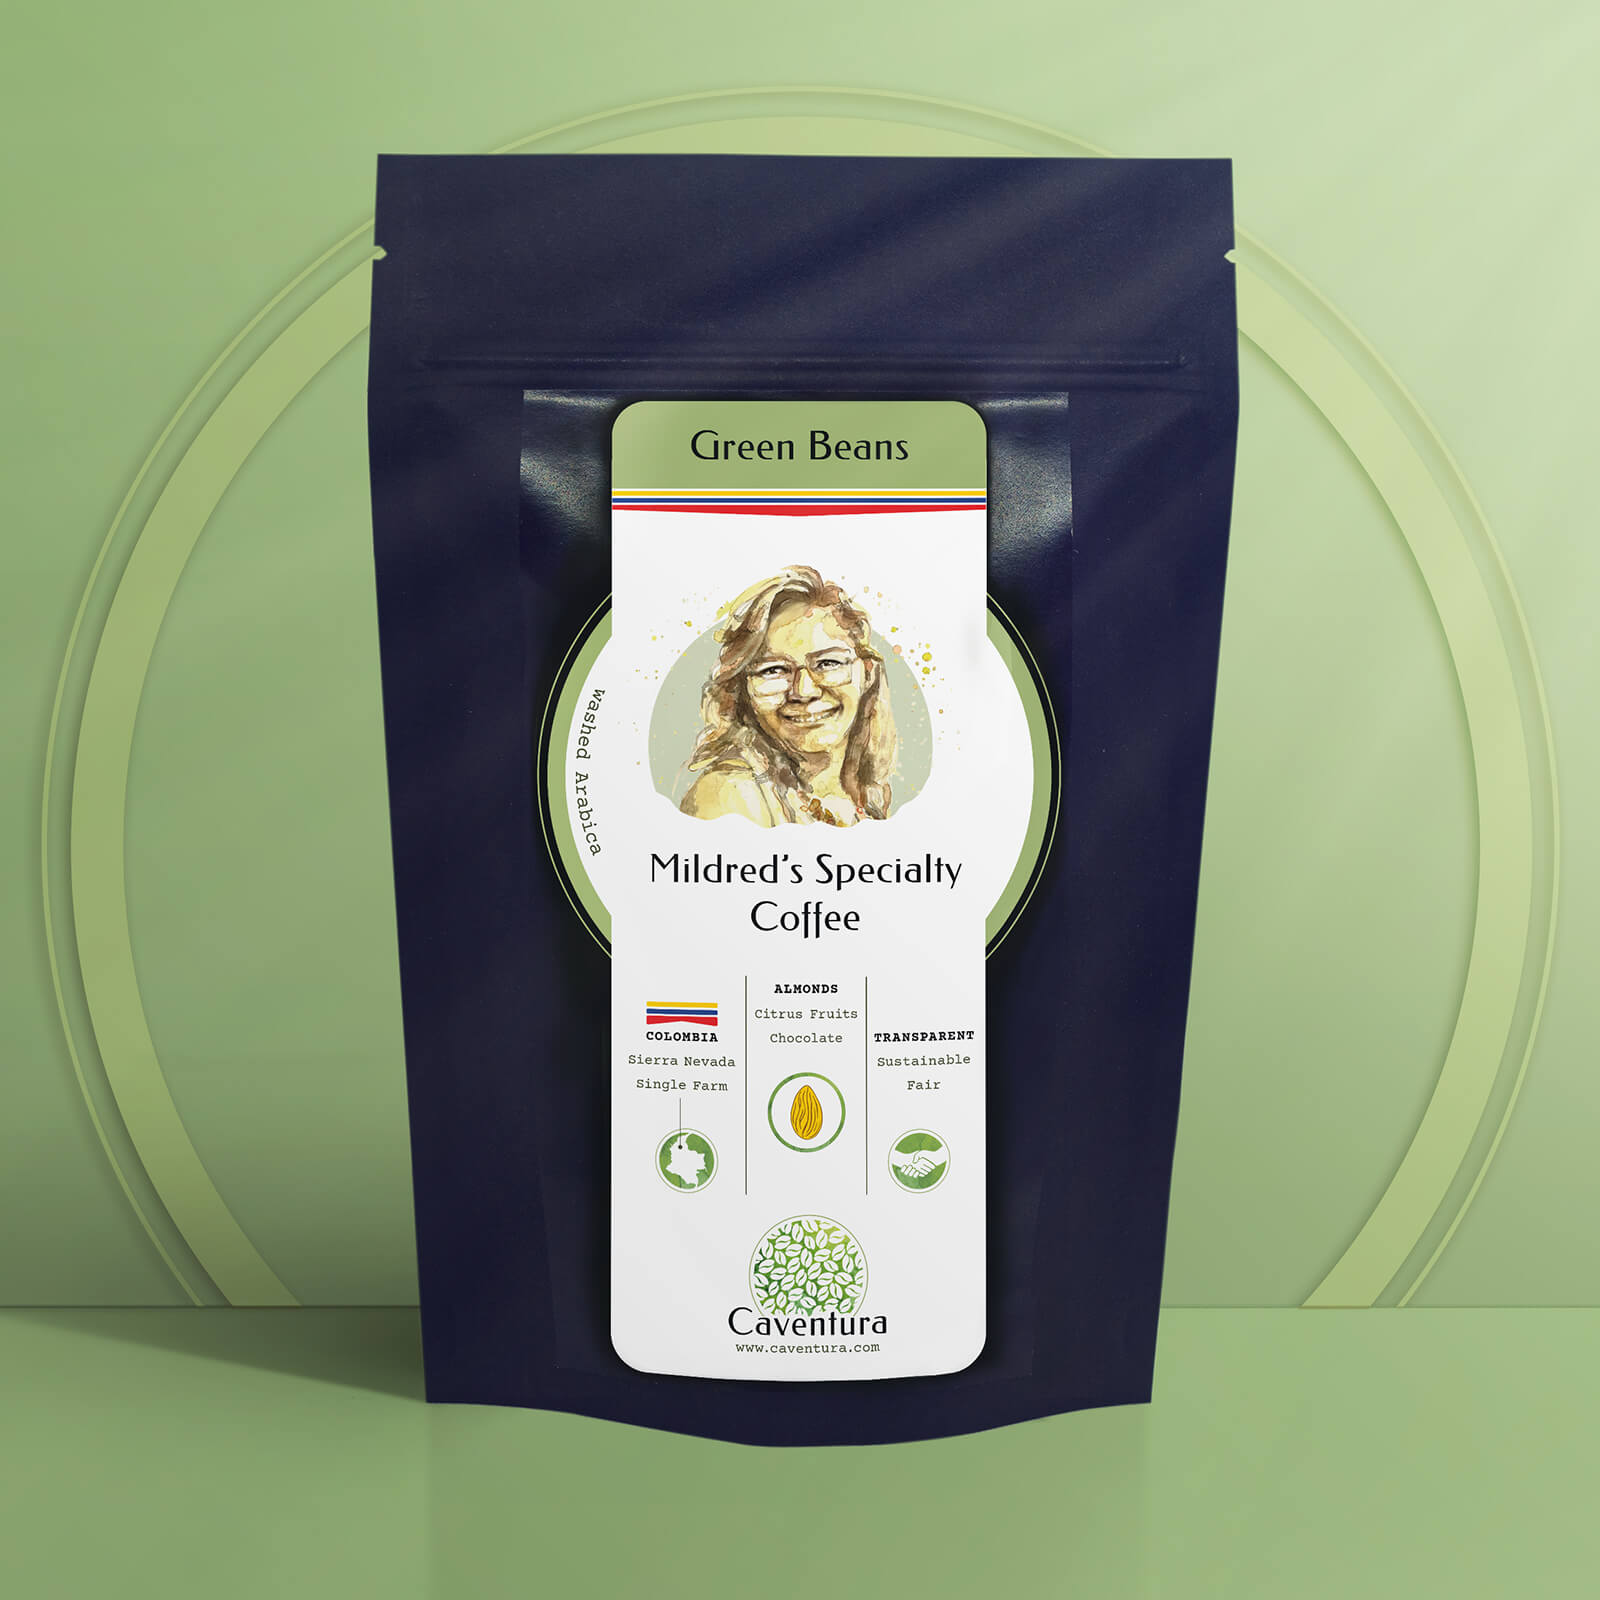 Mildred's Specialty Coffee – Green Beans